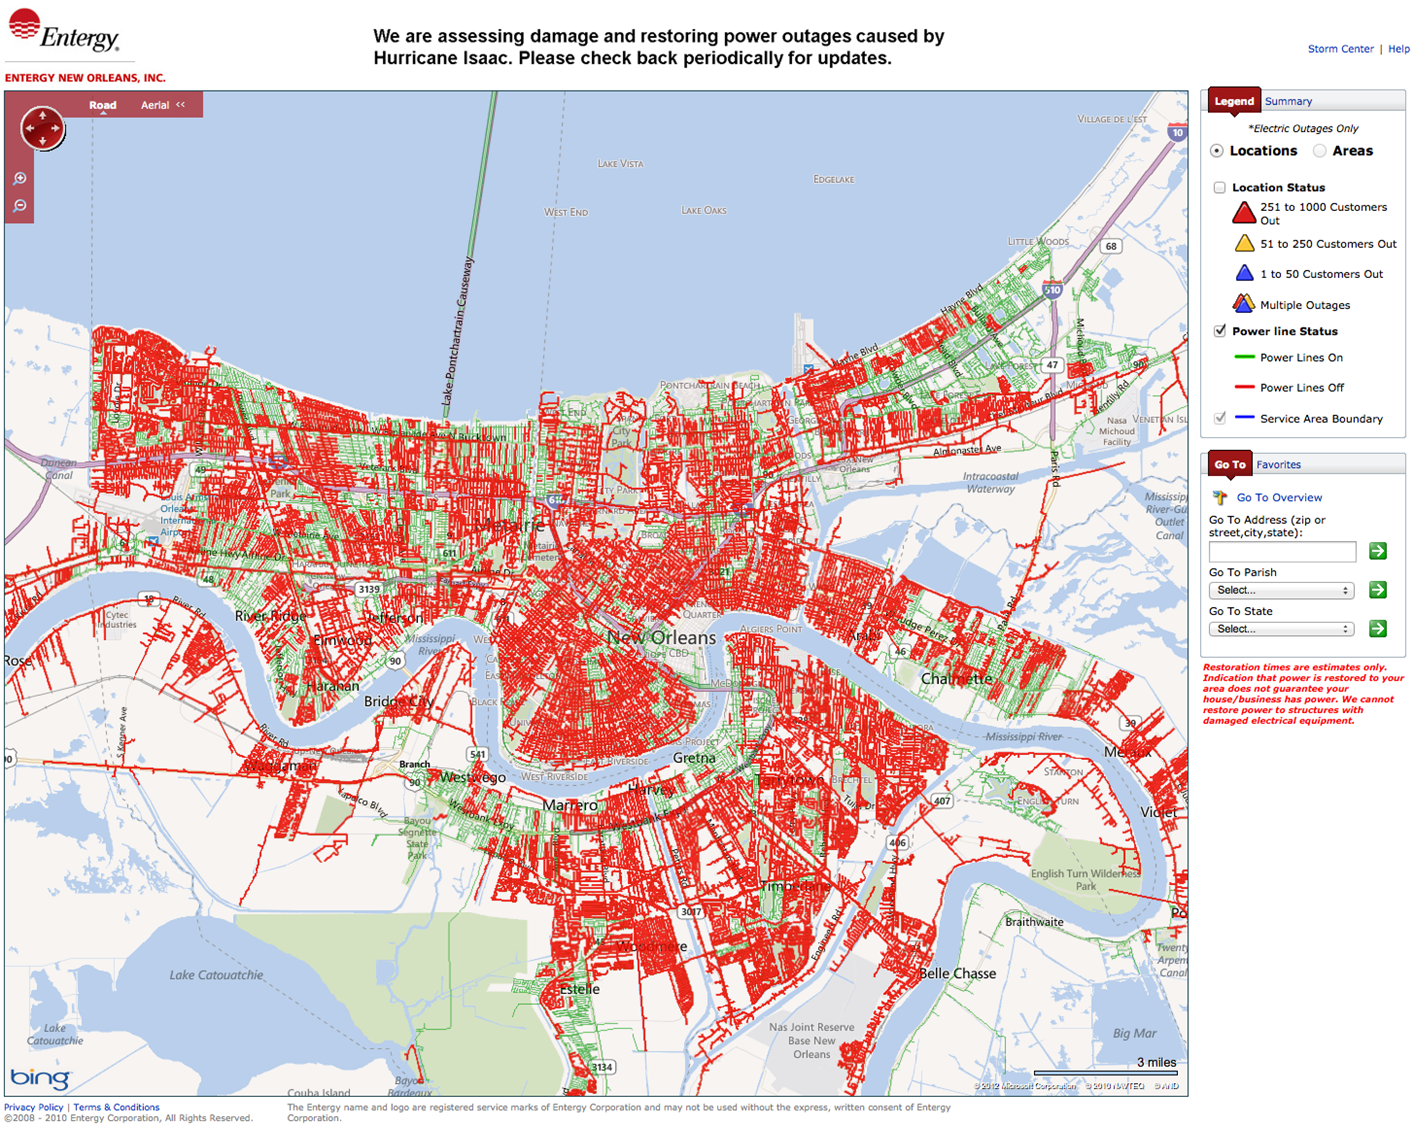 New Orleans Power Outages Seen by the VIIRS Day-Night Band – The